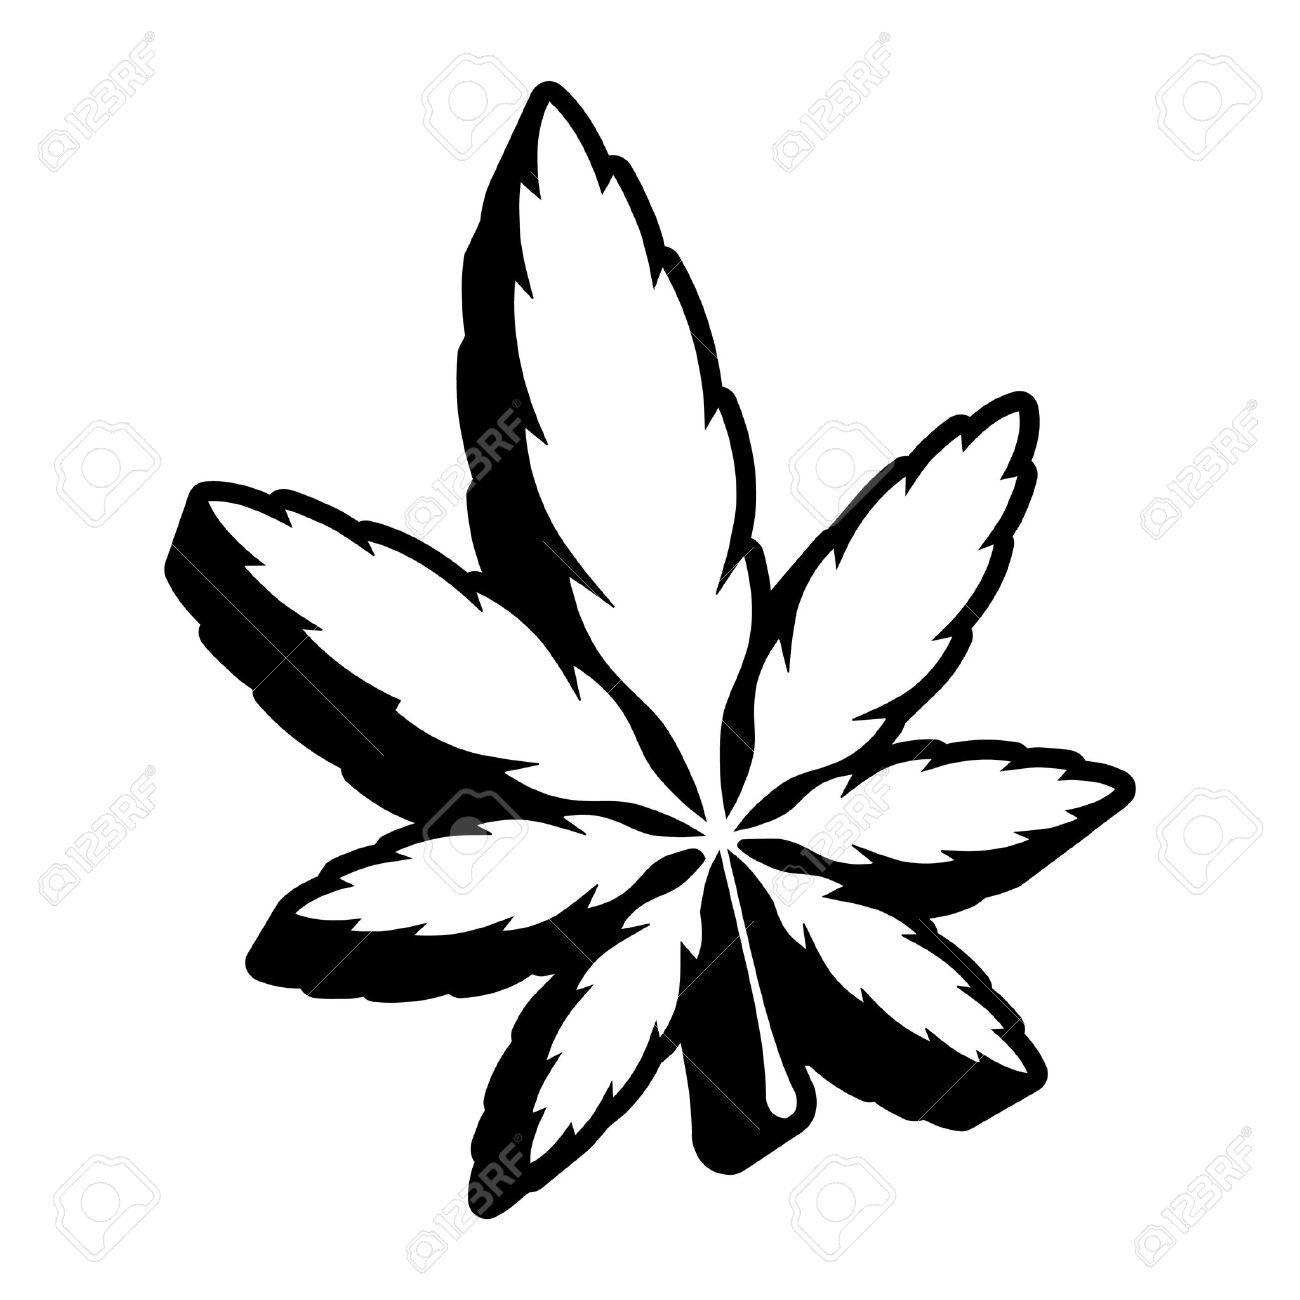 1300x1300 Weed Stock Photos. Royalty Free Business Images